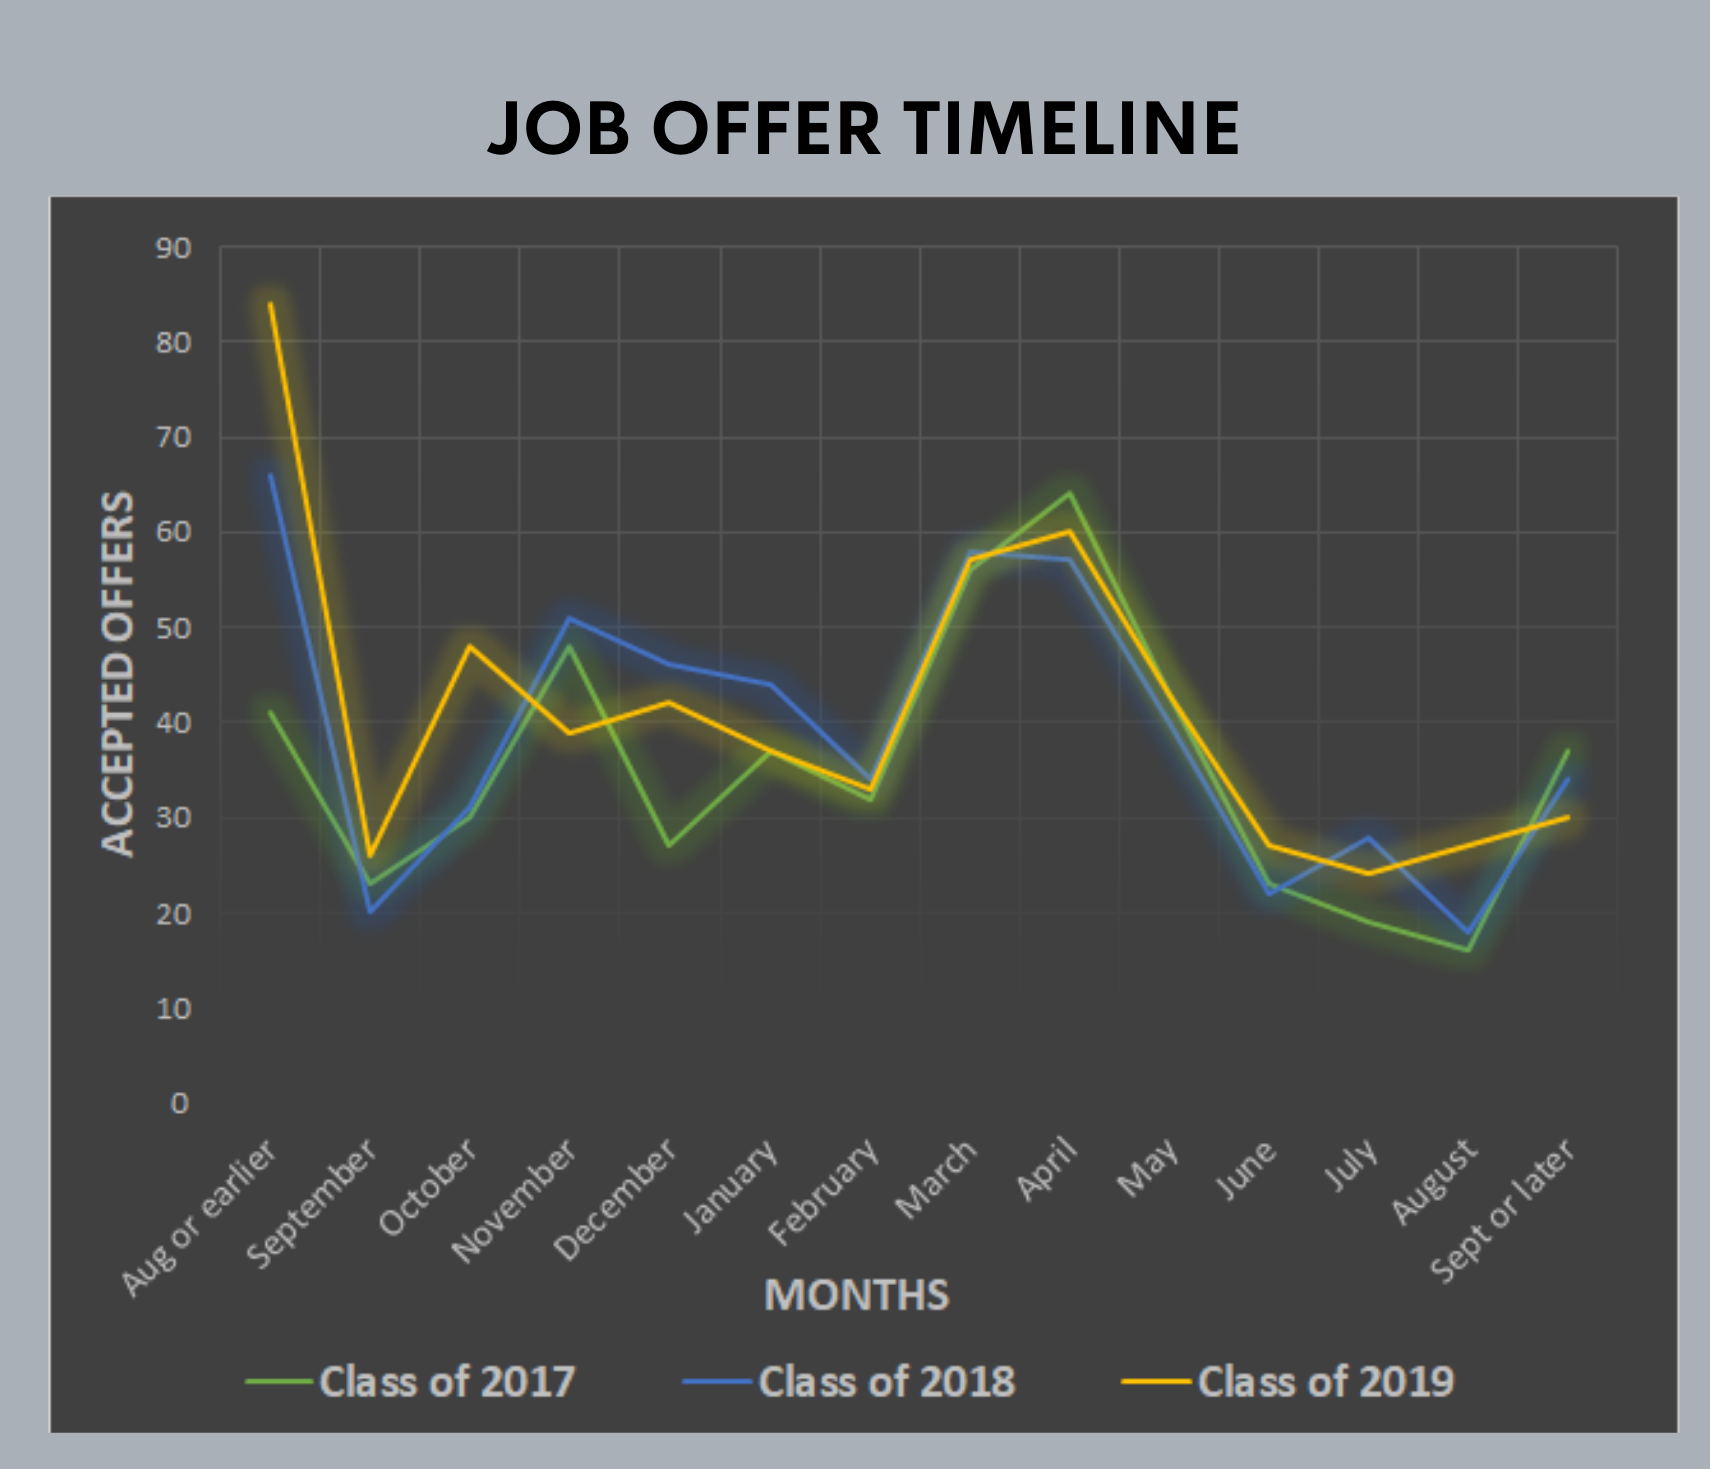 A graph showing the various job offer timelines in 2017, 2018, and 2019